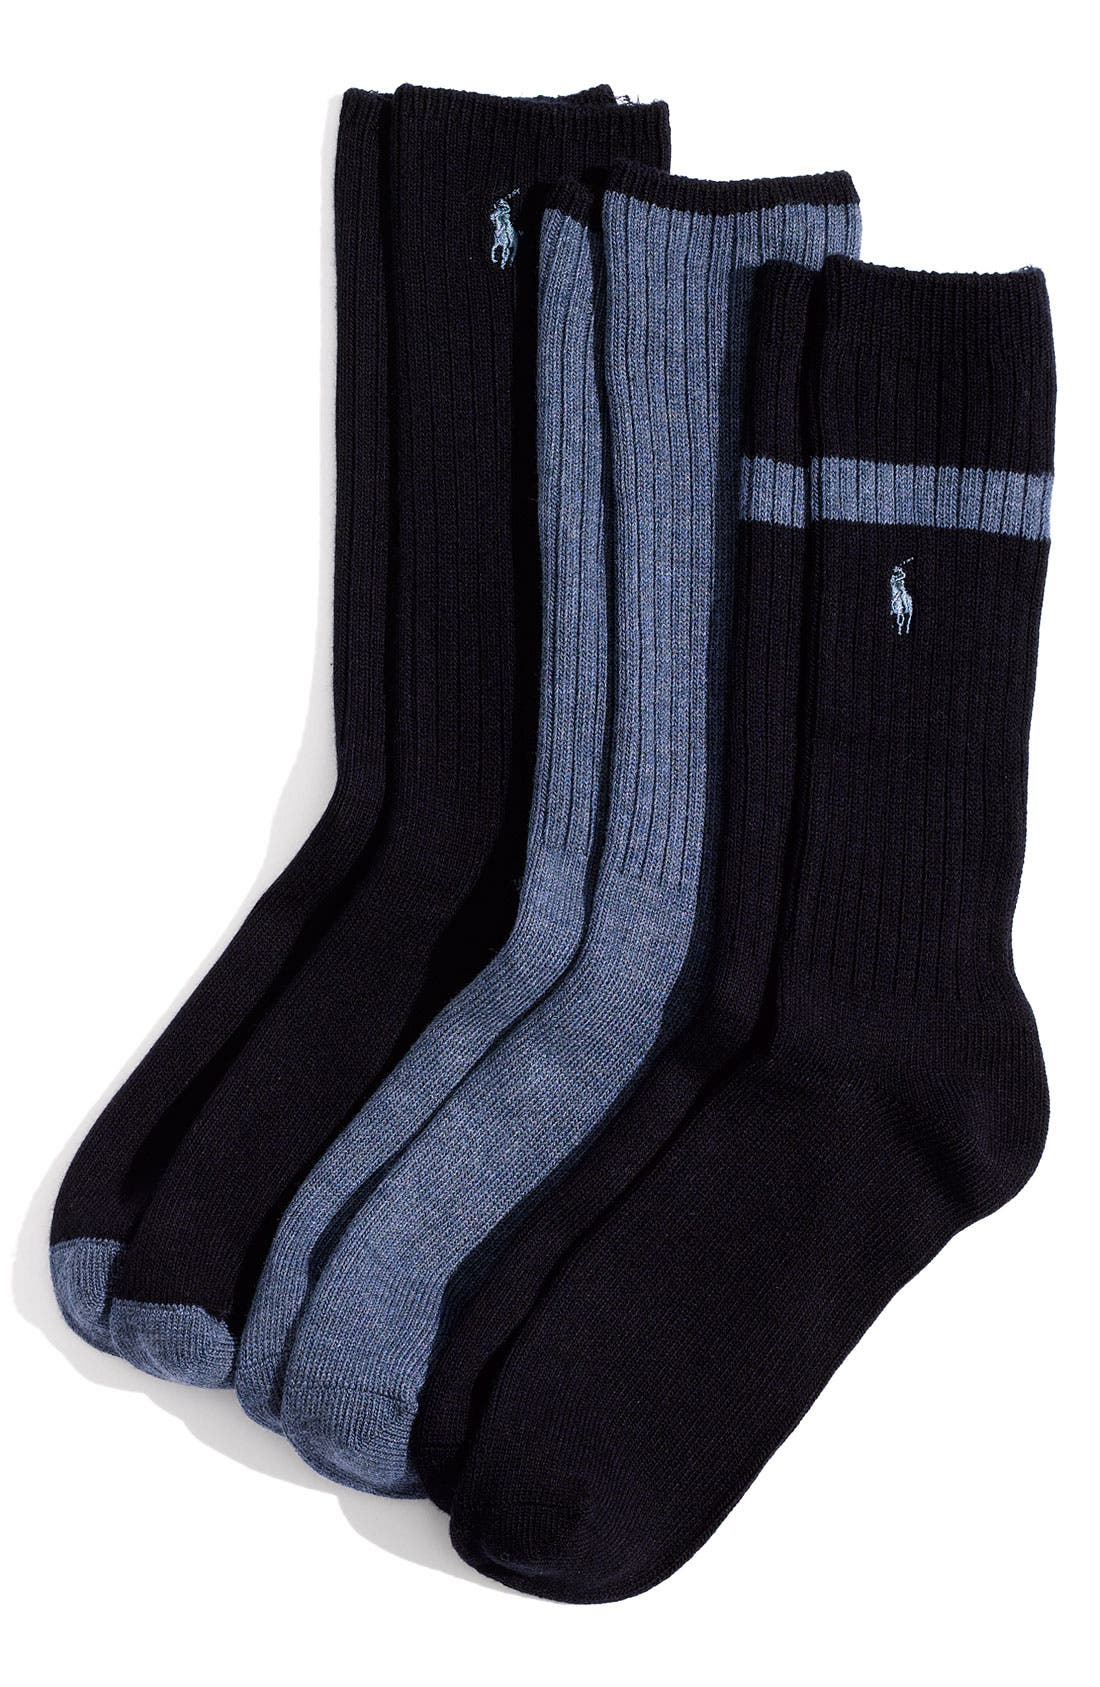 Main Image - Polo Ralph Lauren Ribbed Socks (3-Pack)